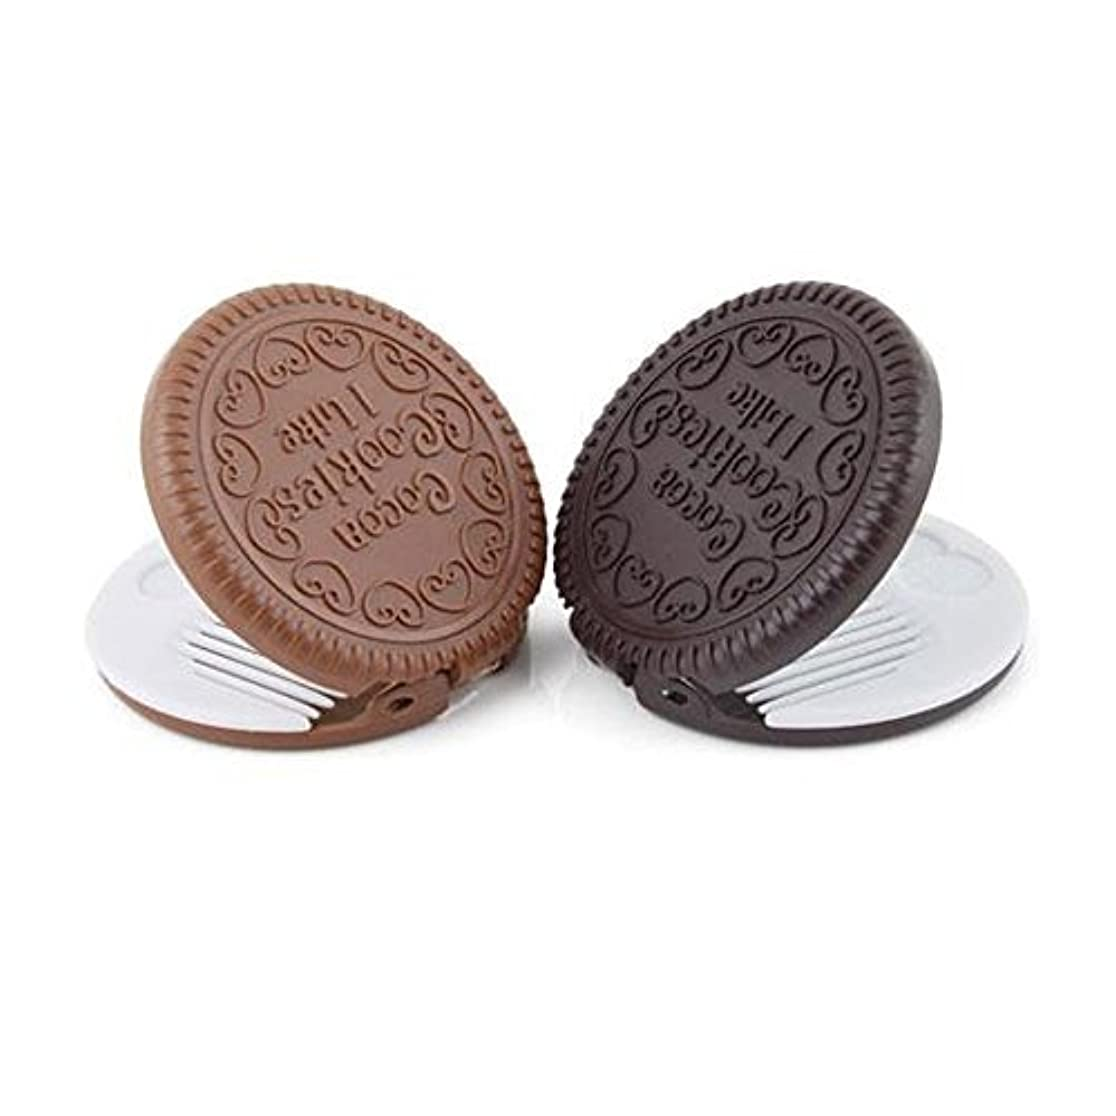 その結果復活させるハイキングに行くyueton Pack of 2 Mini Pocket Chocolate Cookie Compact Mirror with Comb [並行輸入品]